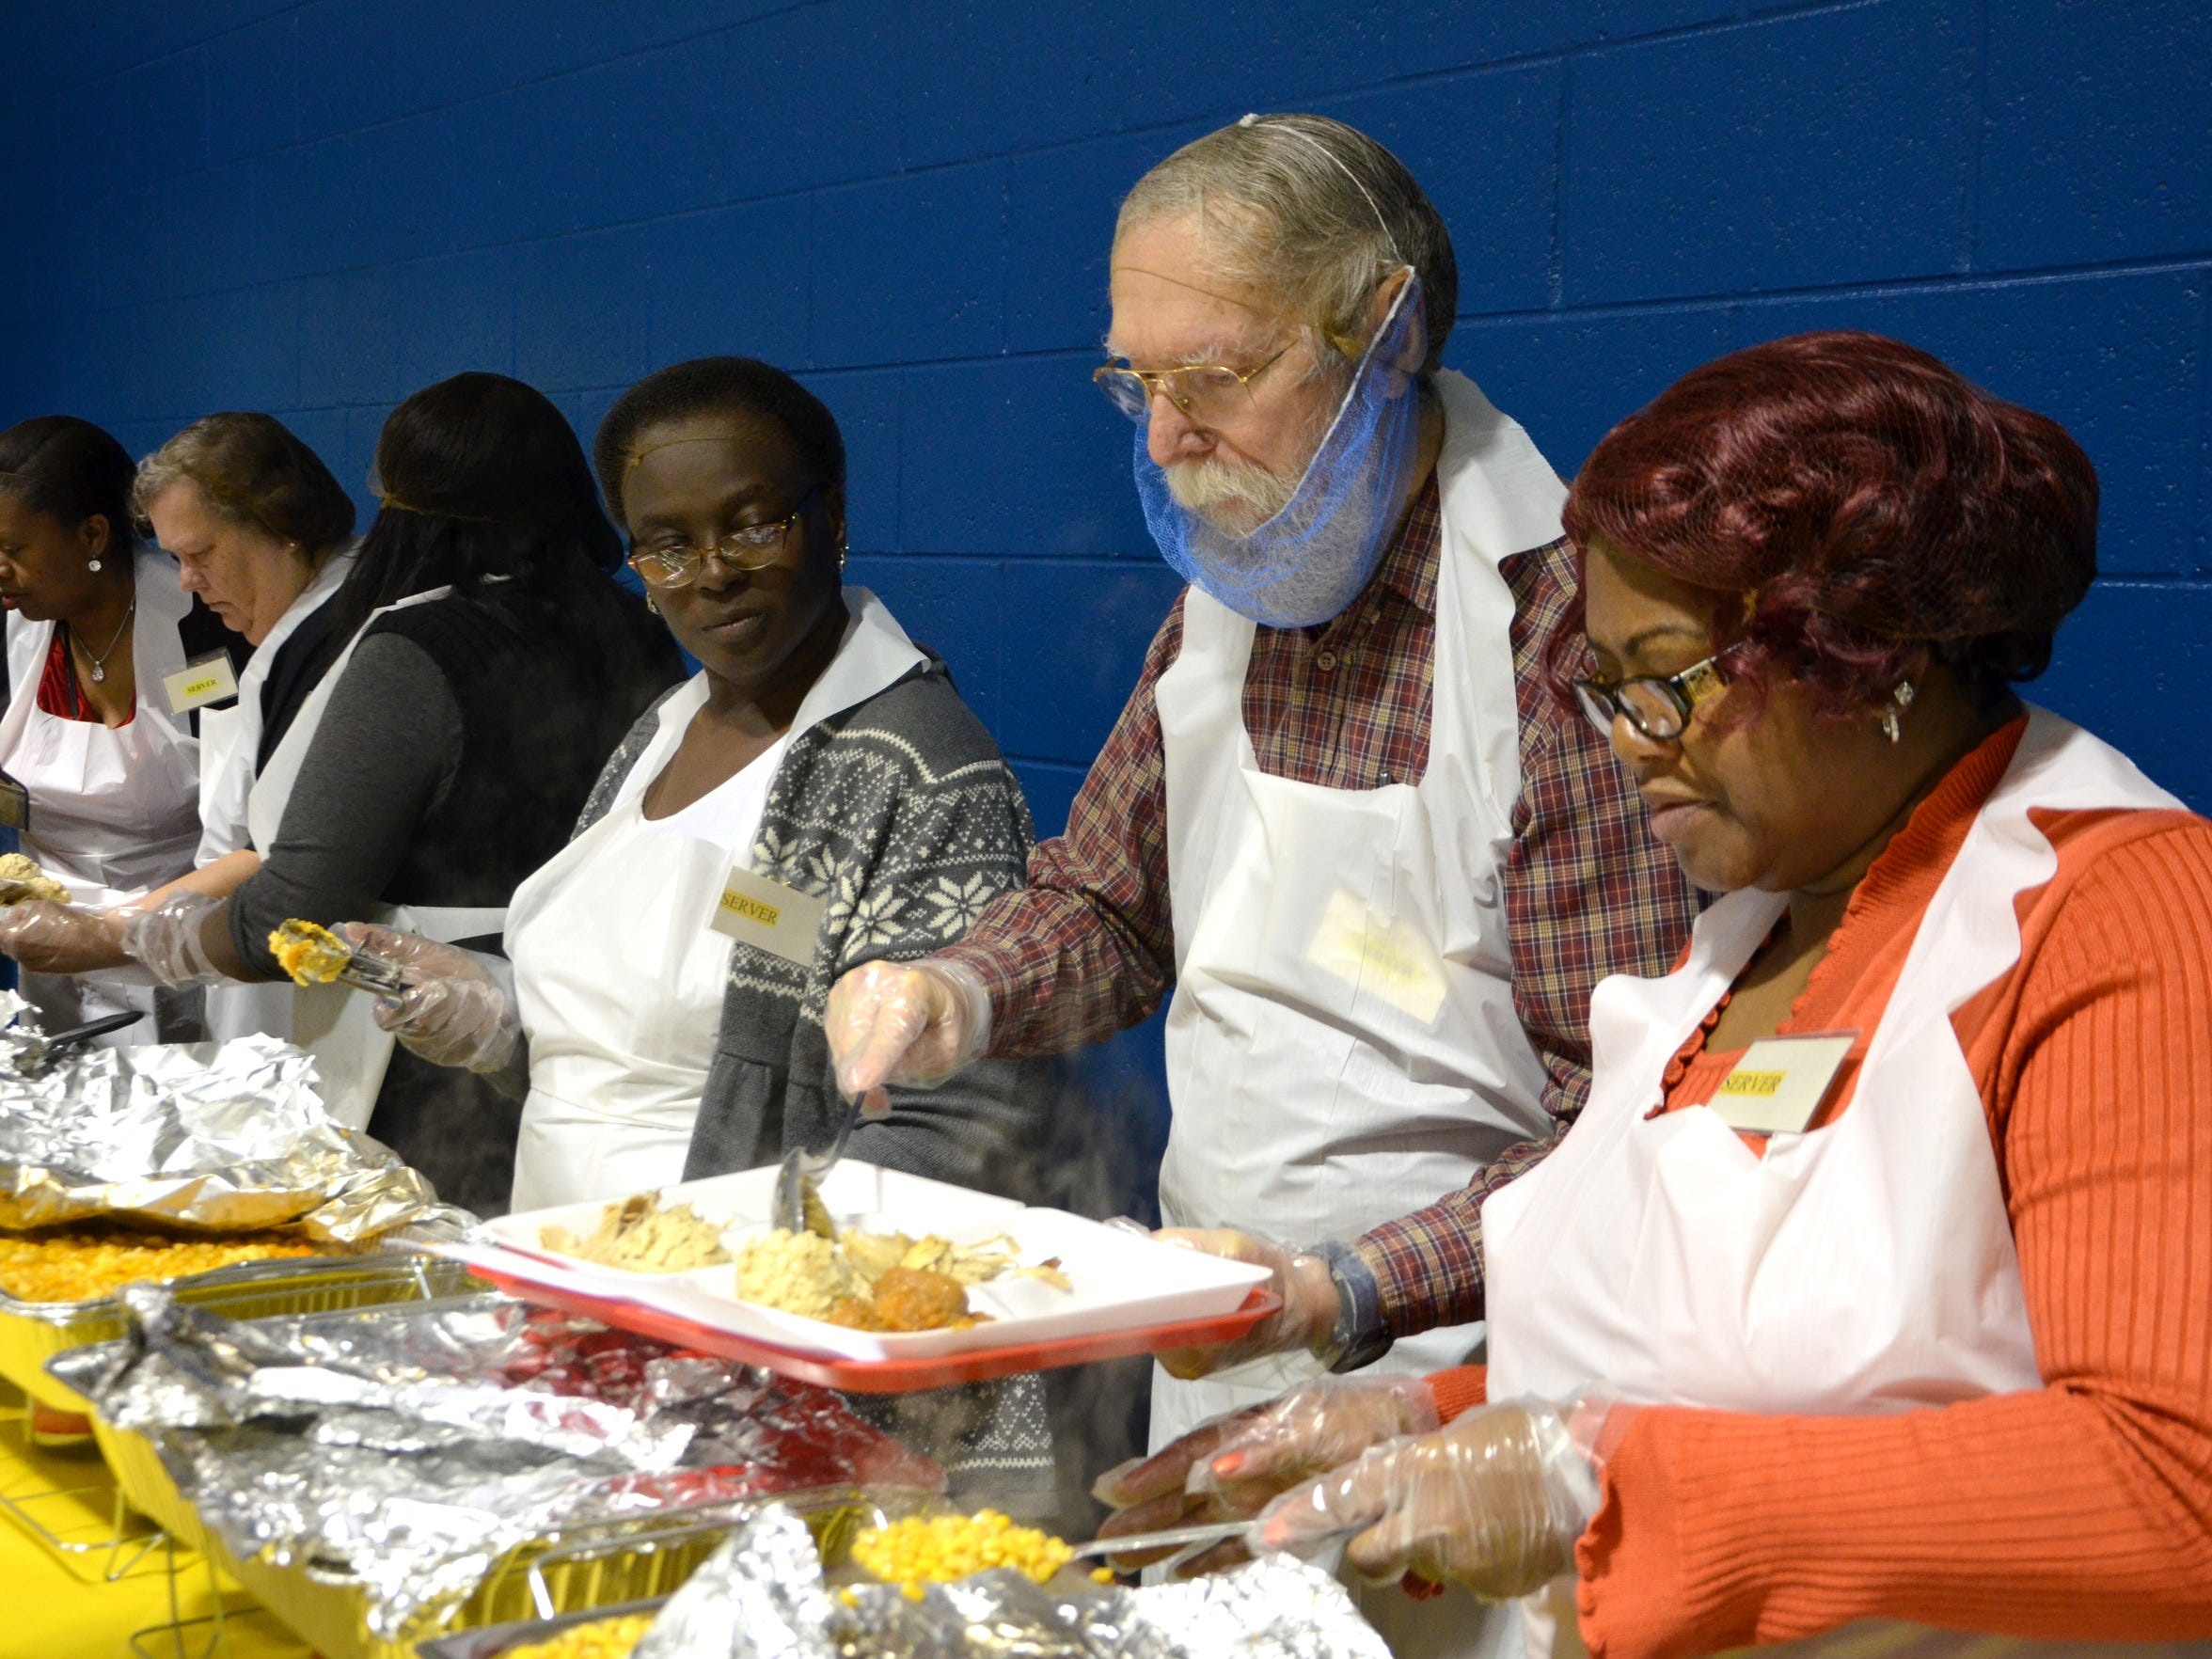 Volunteers serve food at the annual Thanksgiving dinner, held every year at Washington Heights United Methodist Church.